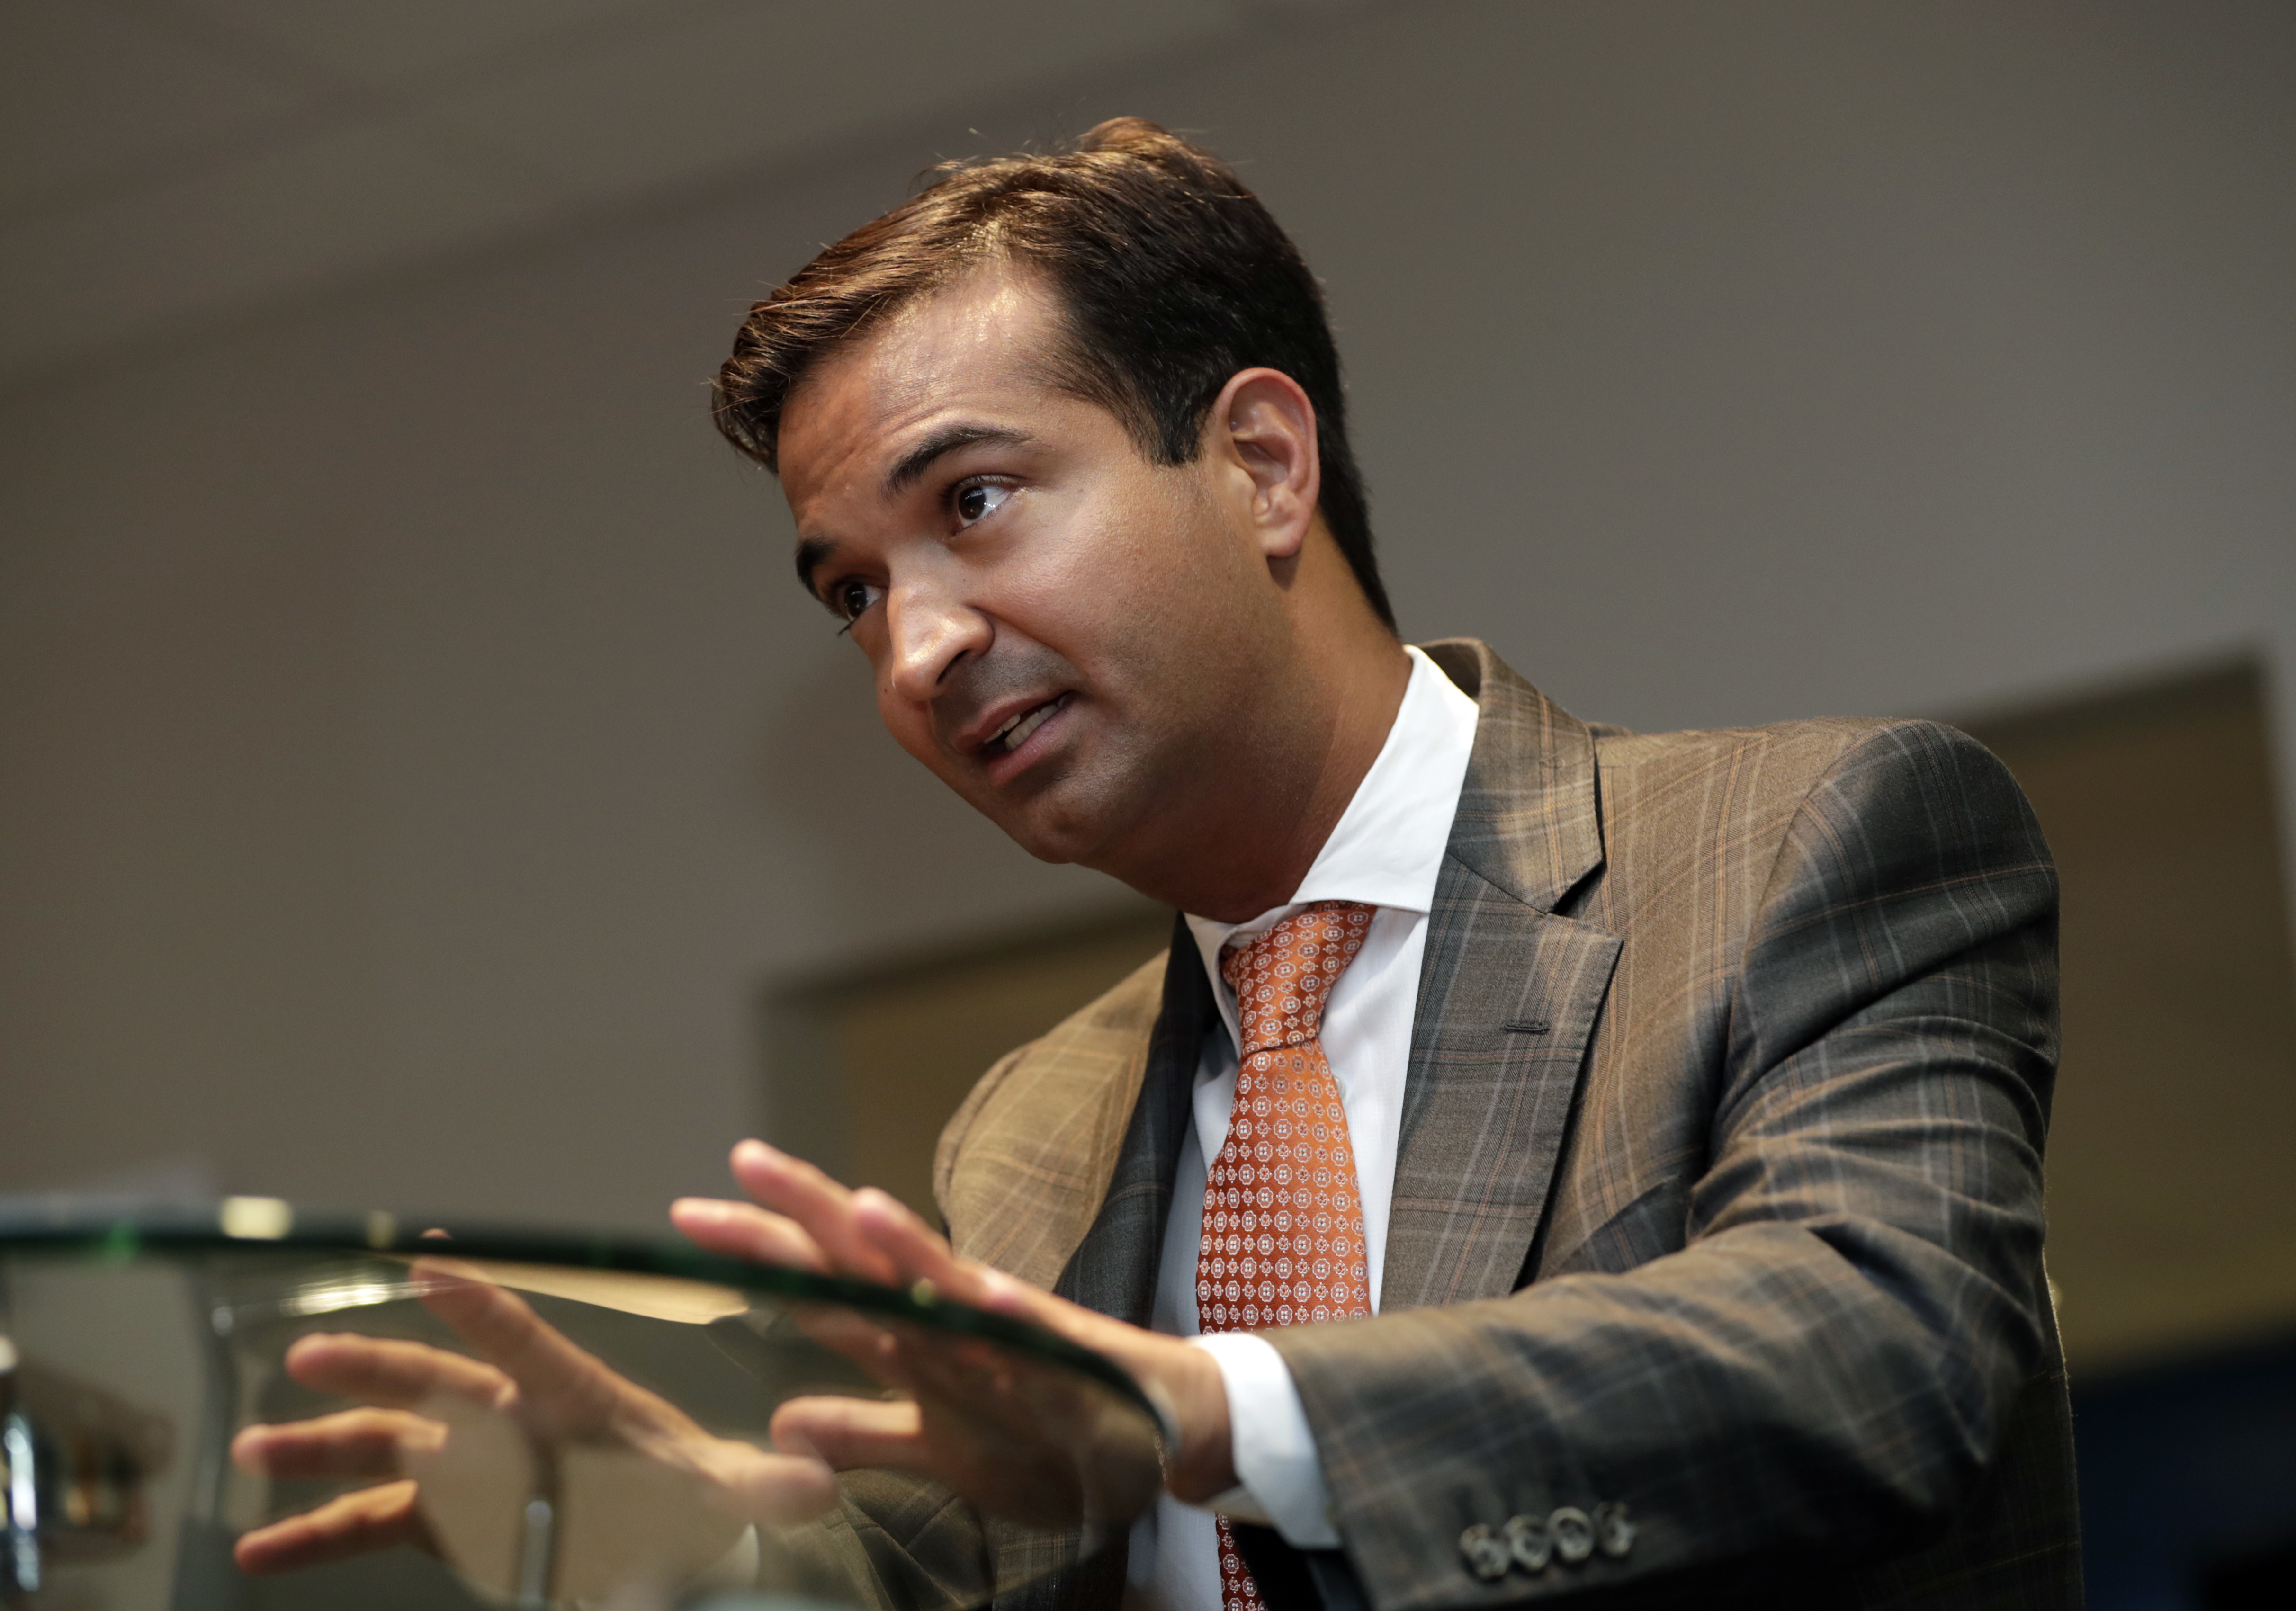 Rep. Carlos Curbelo, R-Fla., speaks during an interview in Homestead, Fla., May 29, 2018. In a district stretching from upscale Miami suburbs to the Everglades and down the Florida Keys to eccentric Key West, 70 percent of Curbelo's constituents ar...